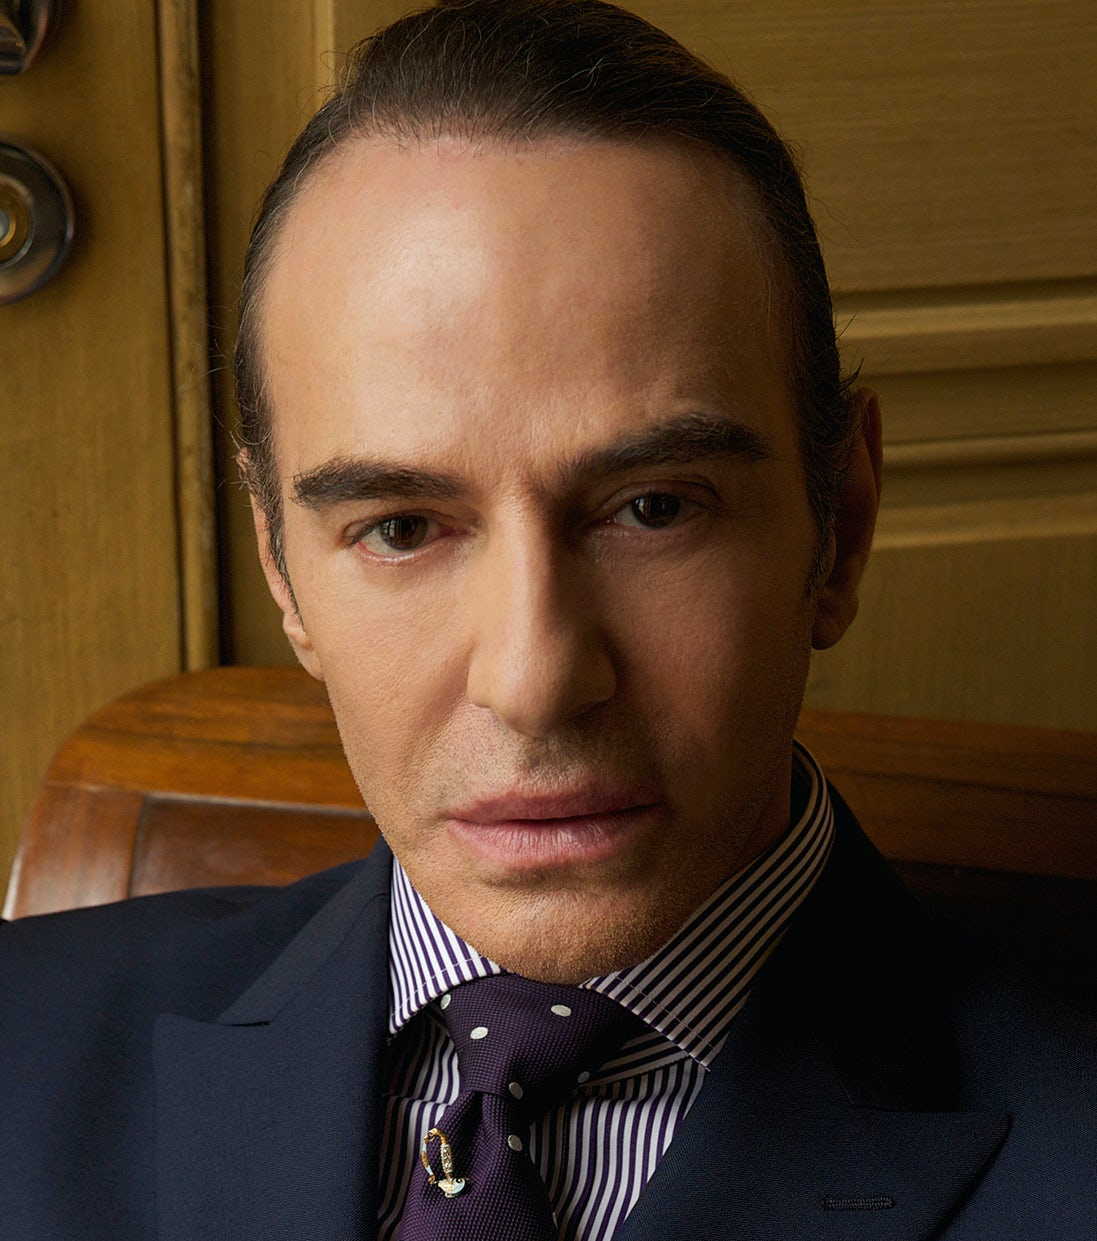 John Galliano, Mario Testino, Amber Valletta and Joan Smalls to Speak at VOICES